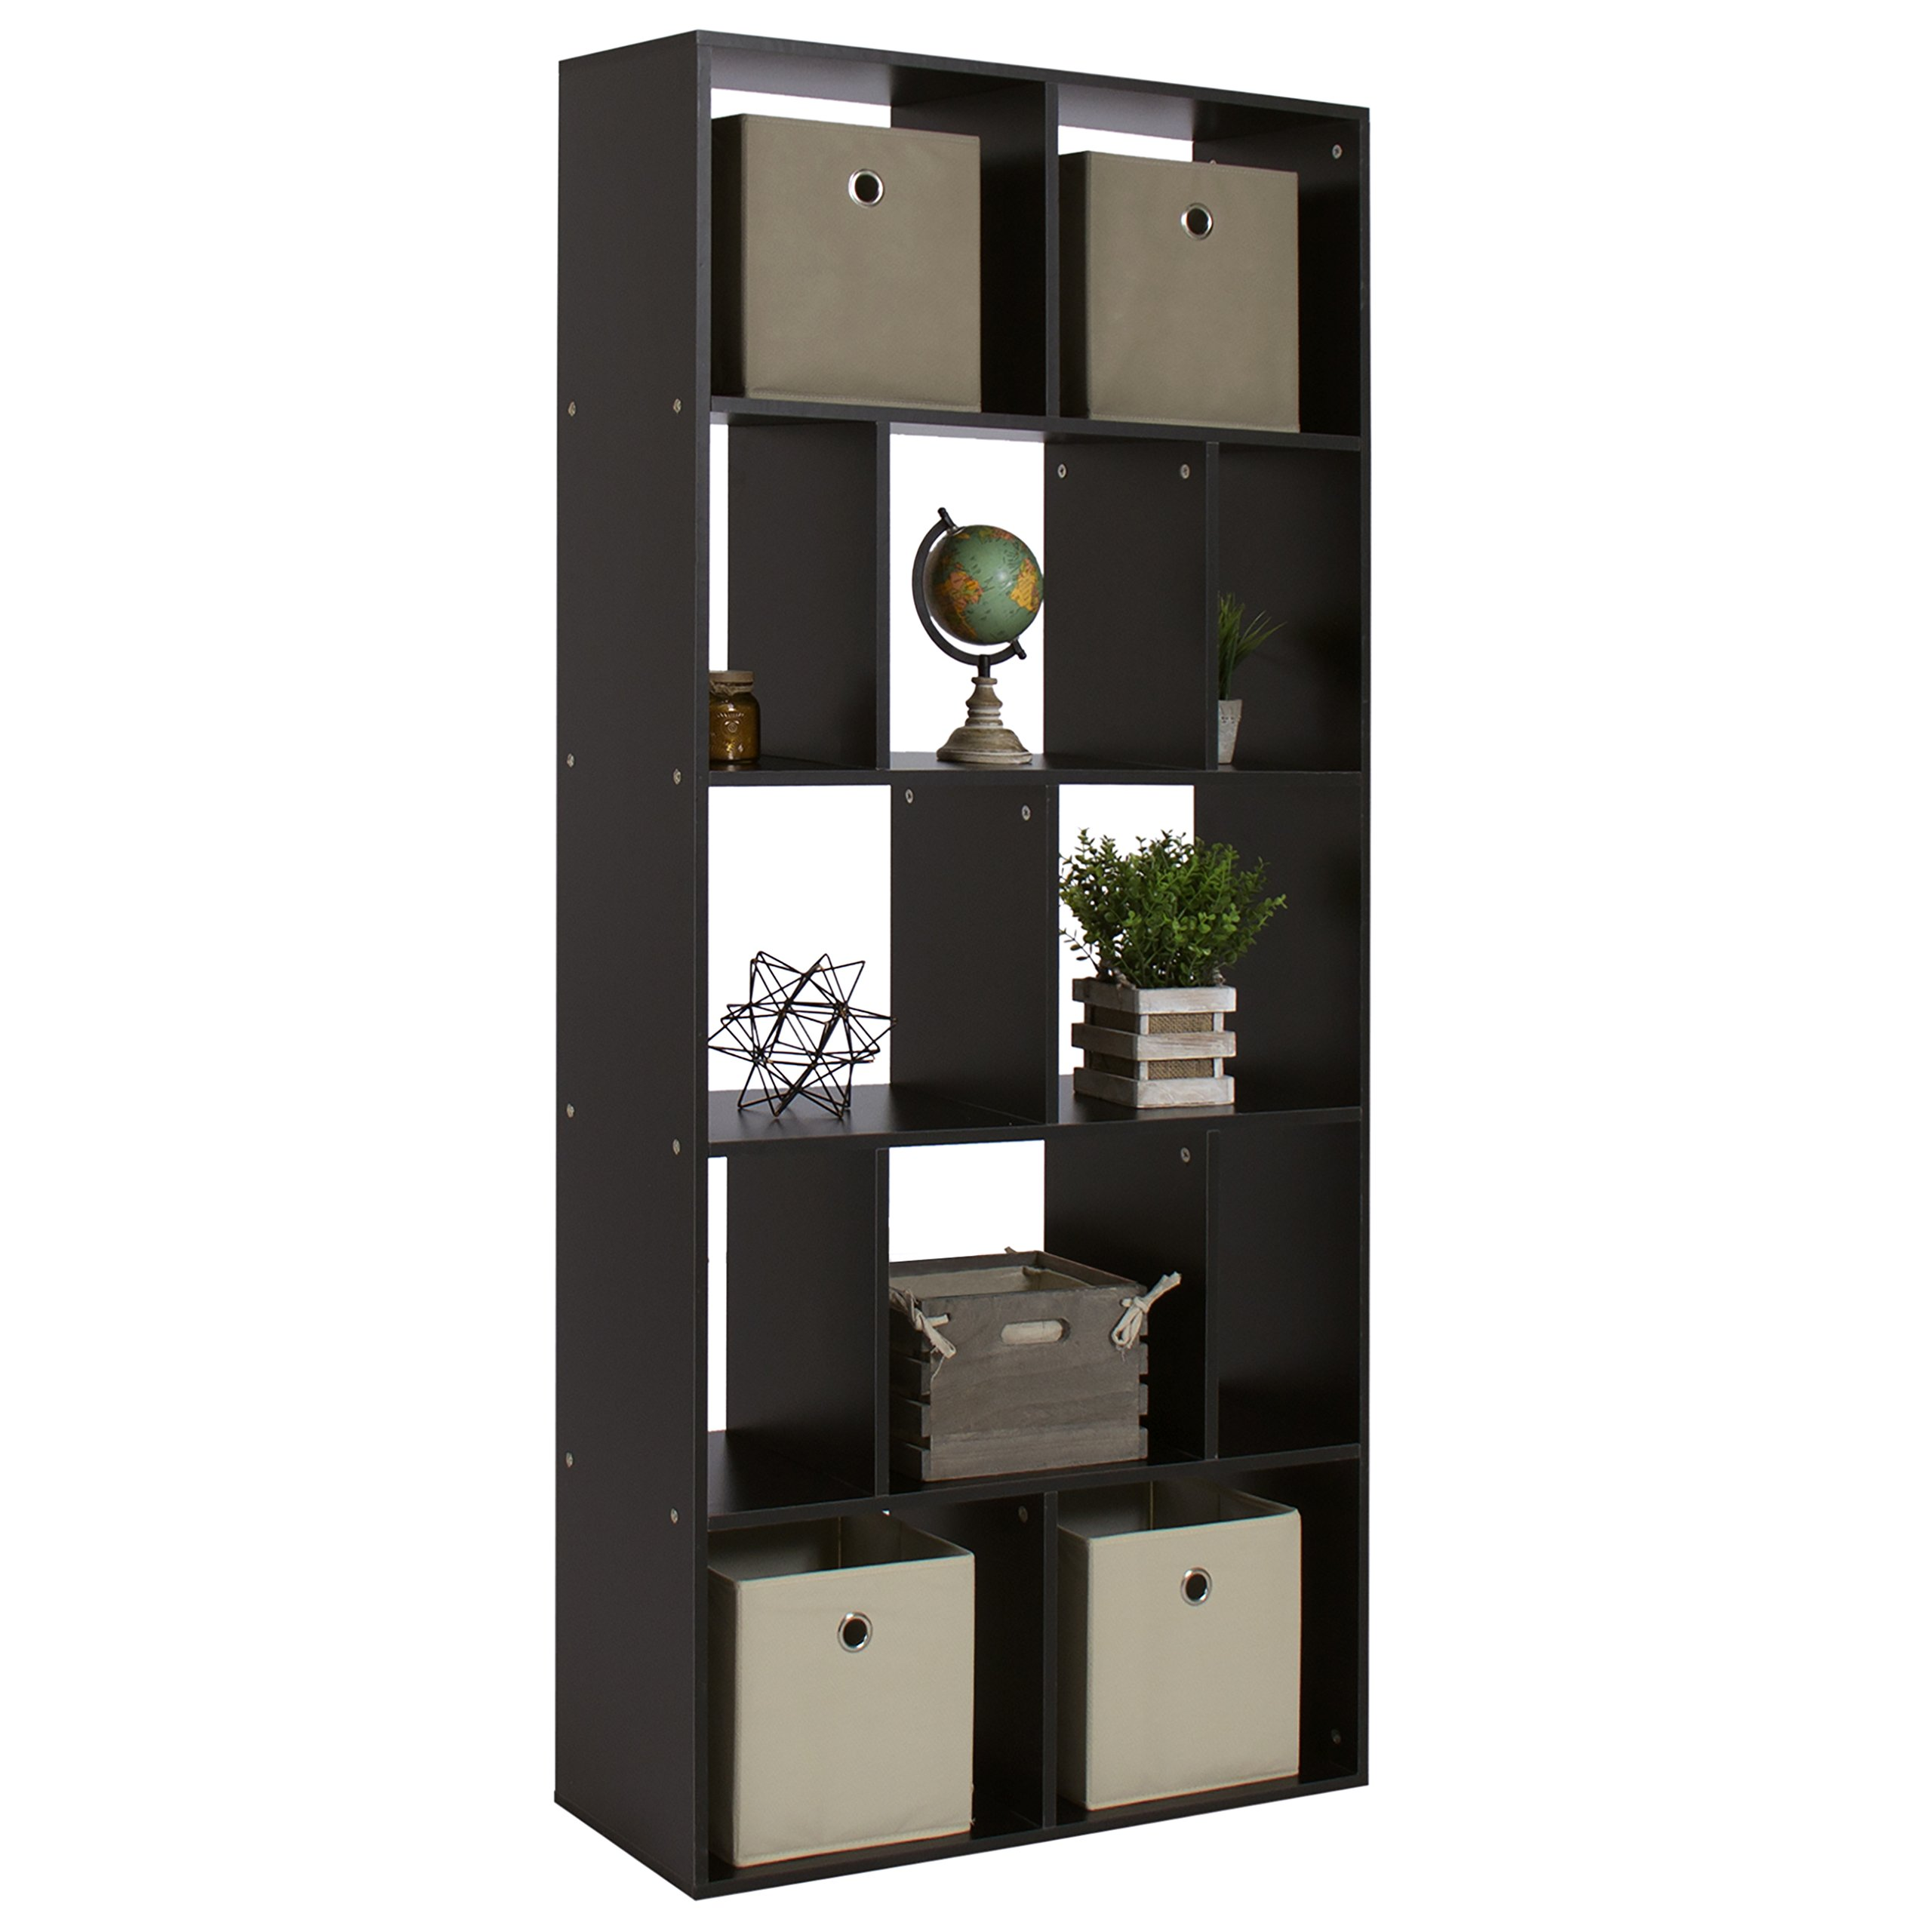 Best Choice Products 12-Shelf Home Furniture Open Cube Modular Design Leveled Bookcase Shelving Cubby Organizer Rack Display Decor for Living Room, Office - Black